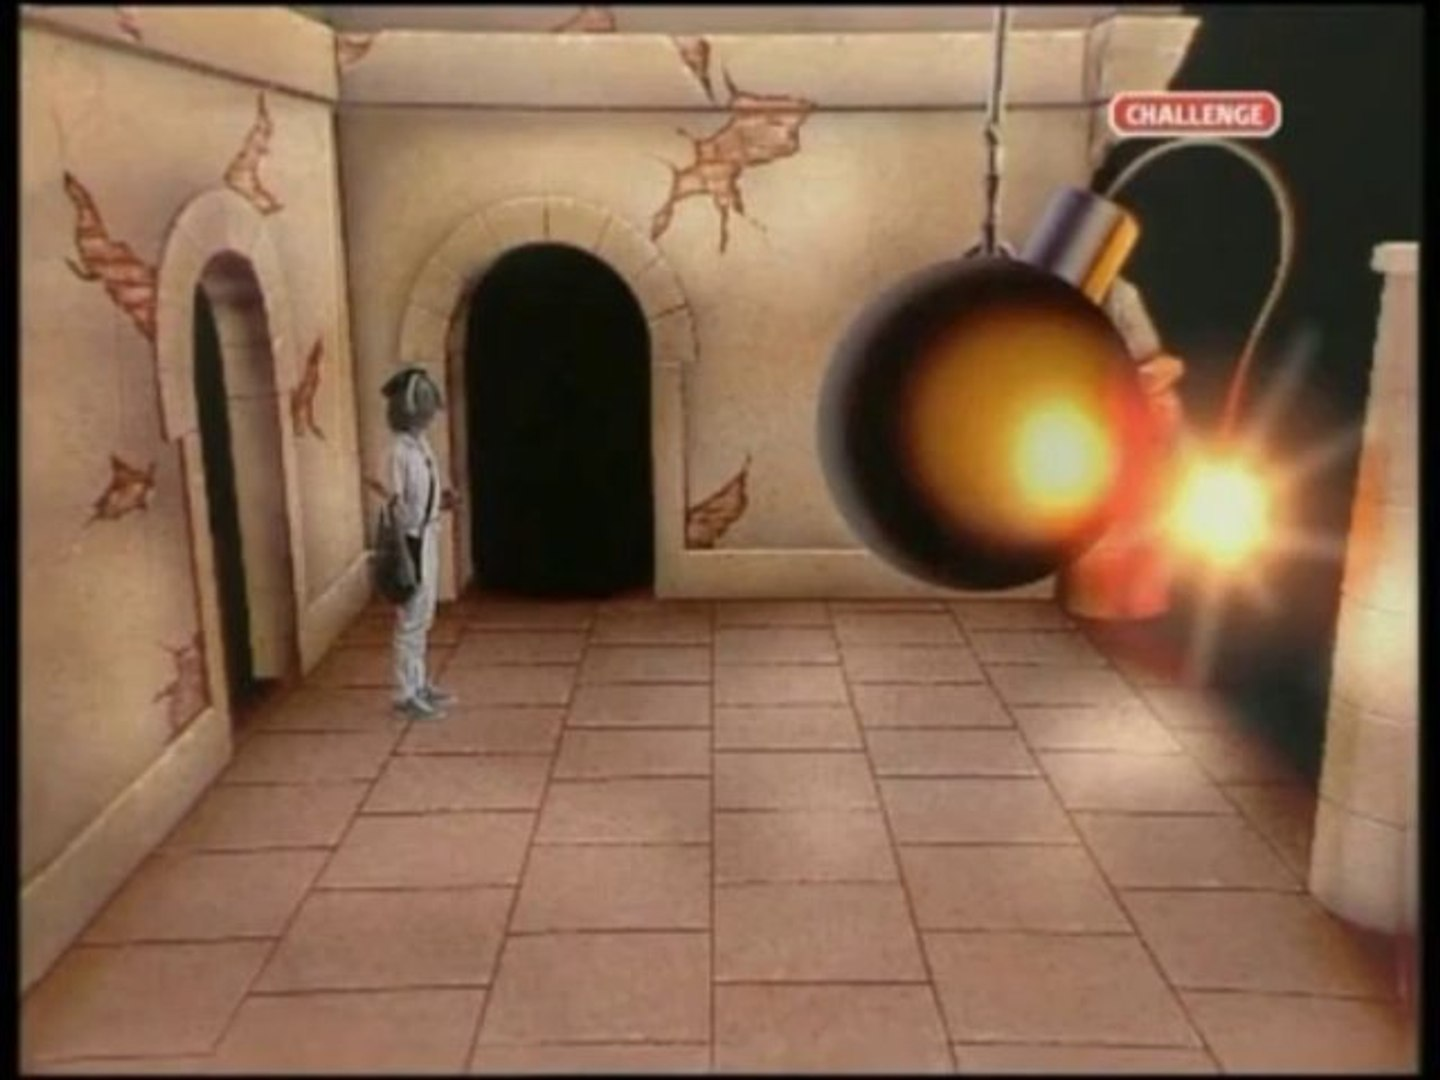 A helmeted child navigates the dungeon with a large bomb acting as a timer.